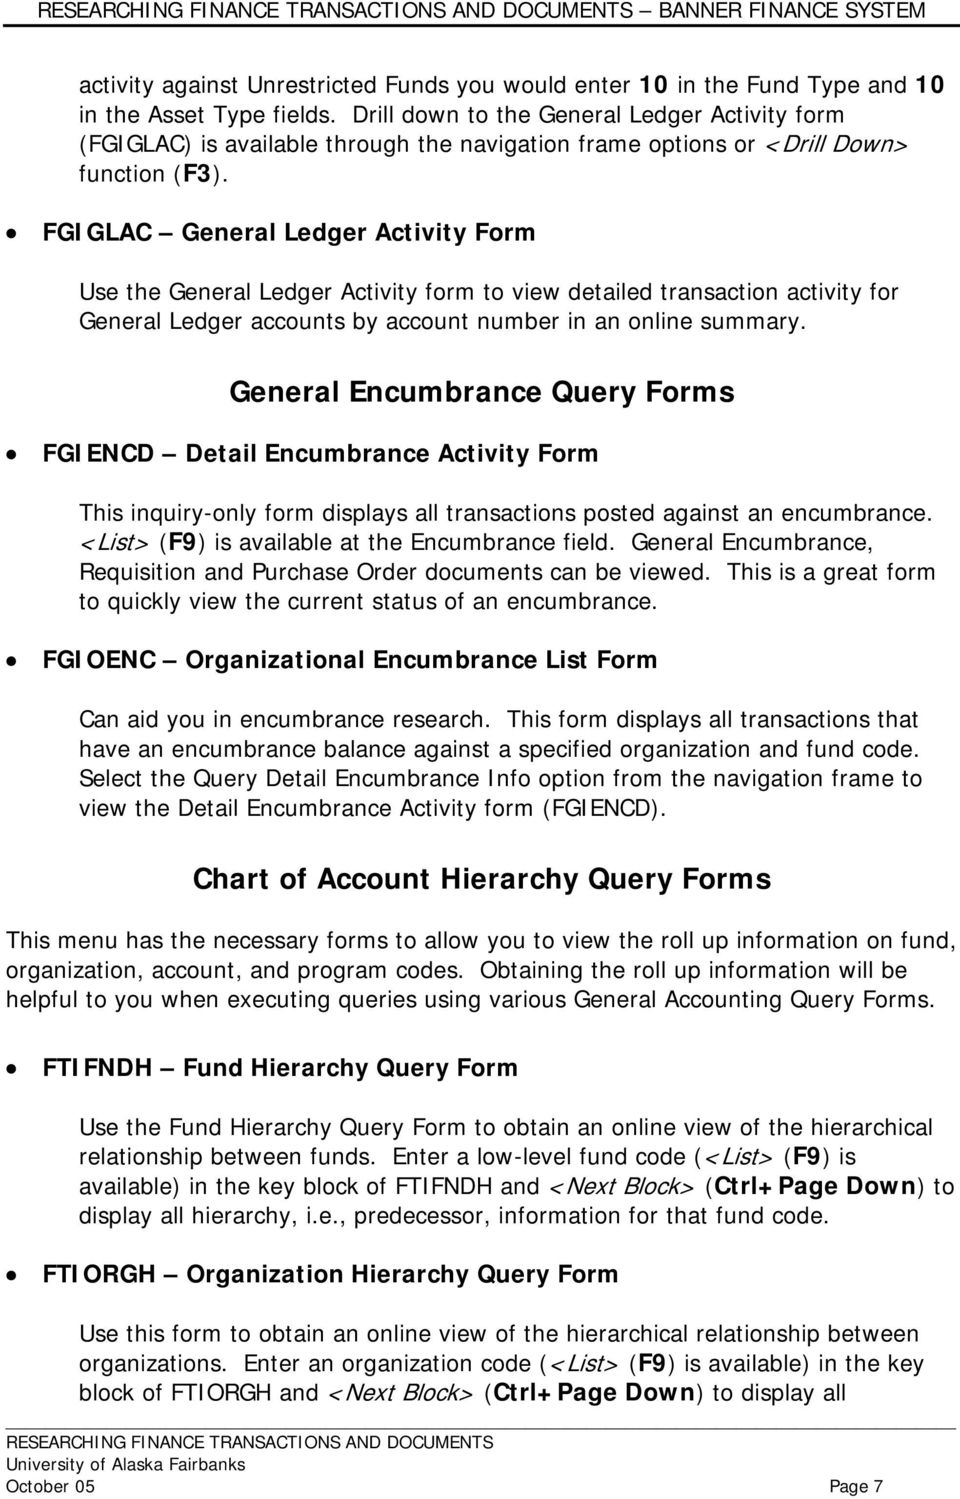 FGIGLAC General Ledger Activity Form Use the General Ledger Activity form to view detailed transaction activity for General Ledger accounts by account number in an online summary.